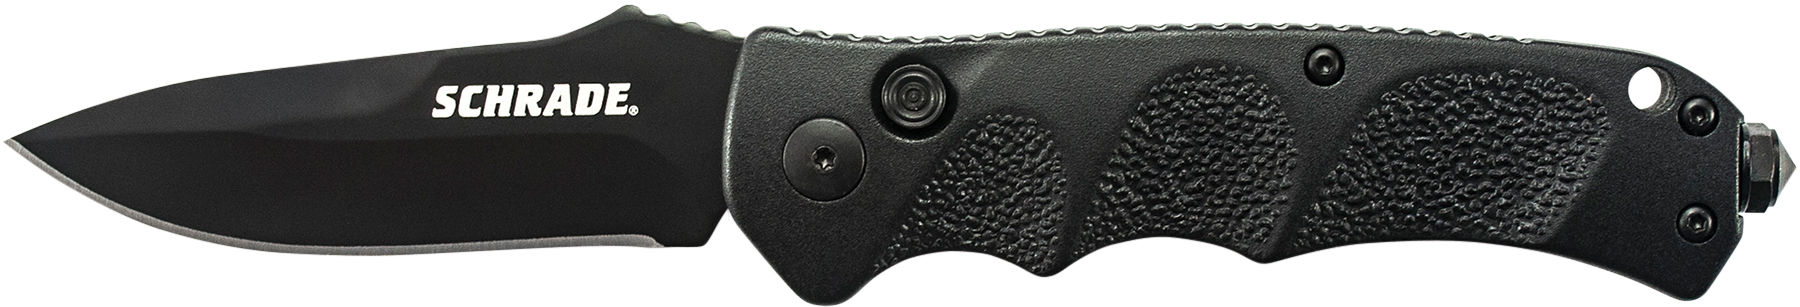 SC60B - Schrade Black Drop Point 4116 Steel, Push Button Lock, Safety On Back Of Handle